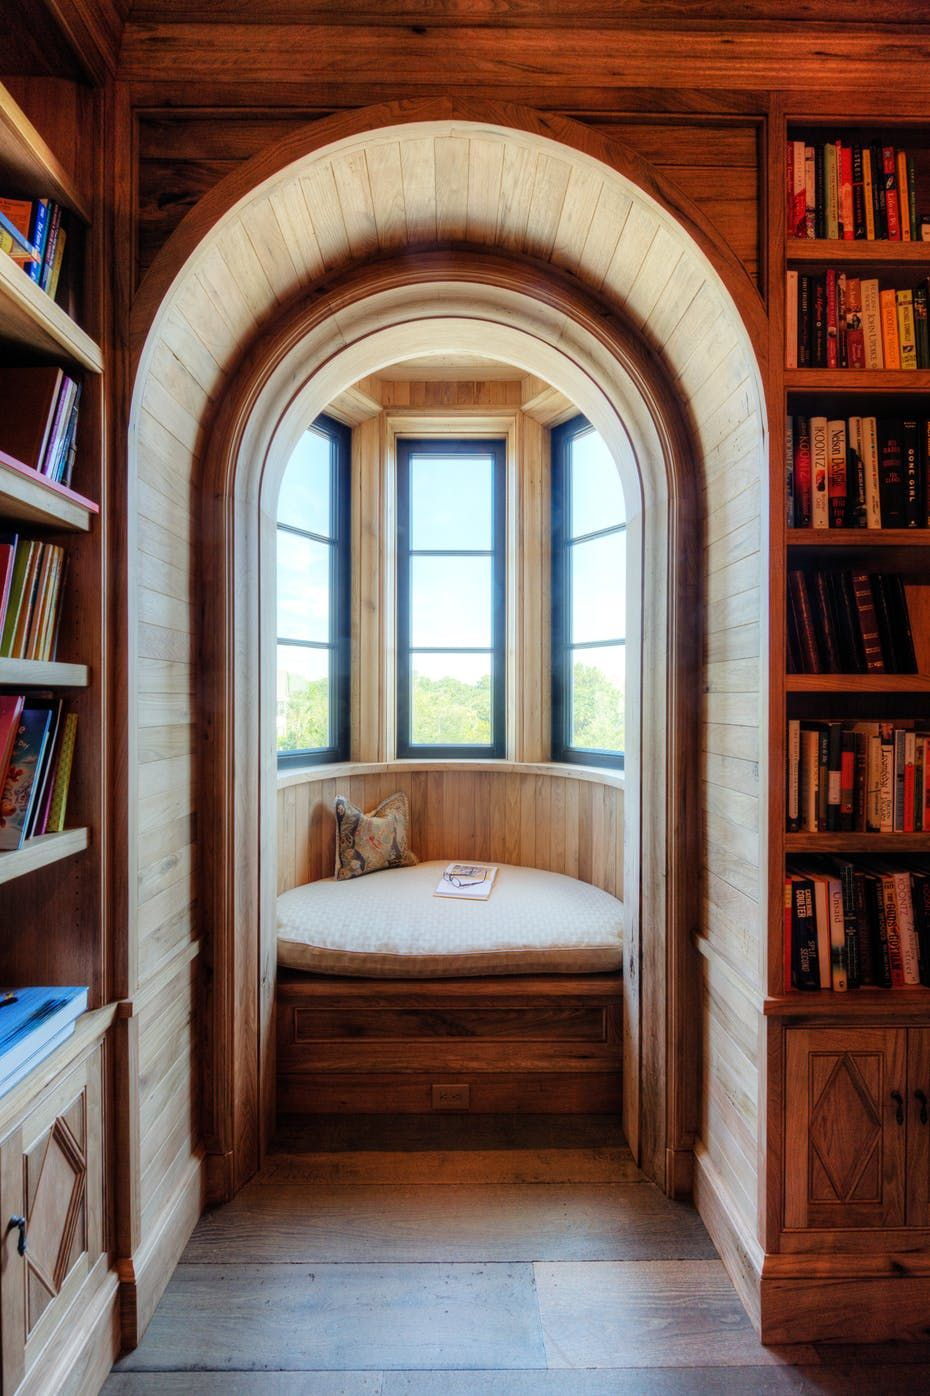 Window Seat Library: Arched Opening Into Curved Bay Window Seat In Natural Wood